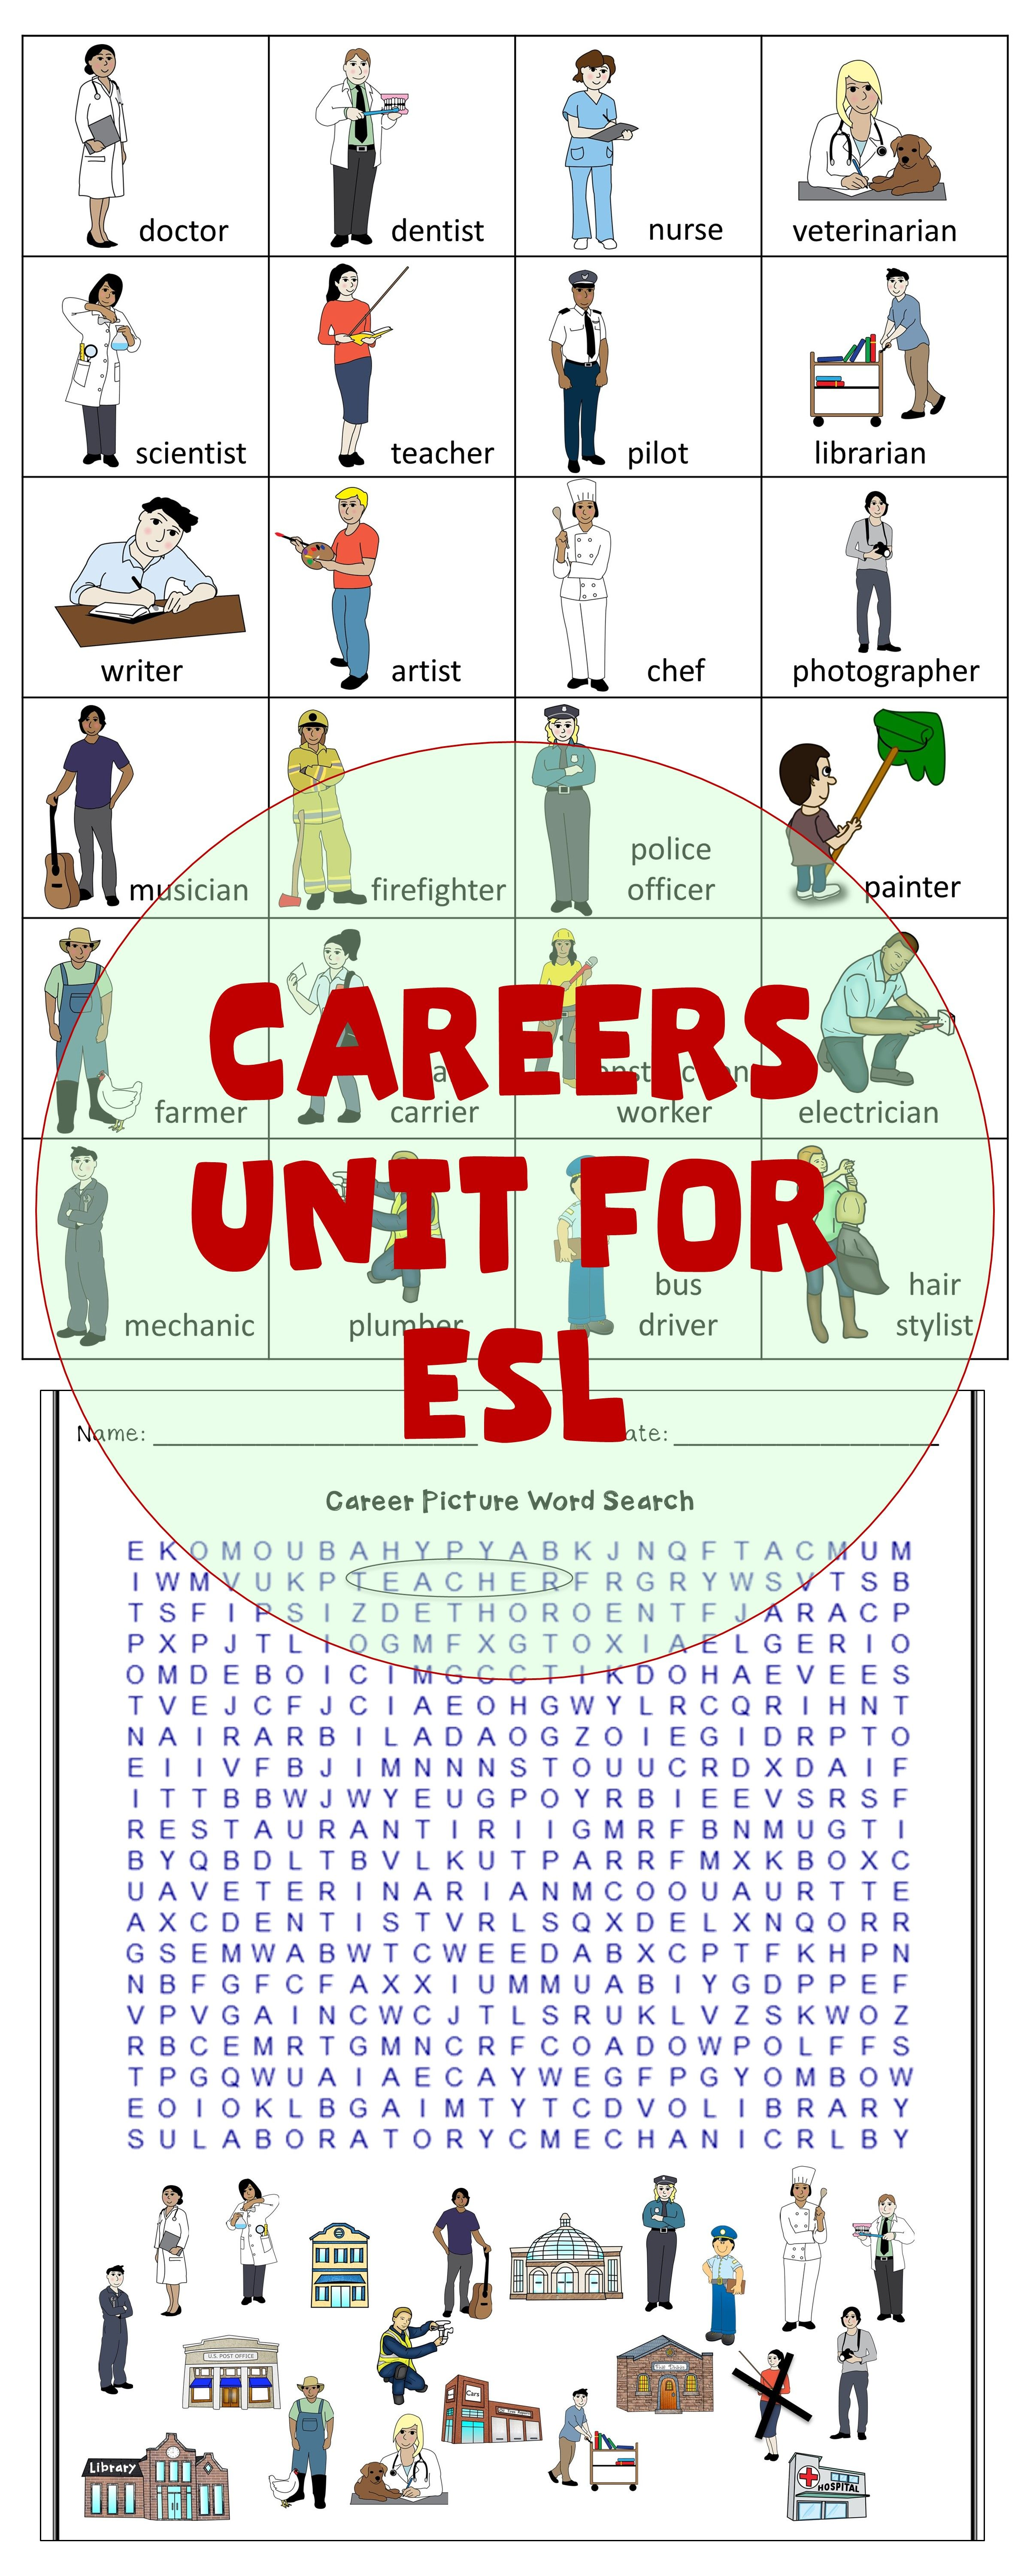 careers vocabulary unit for esl english language learners esl vocabulary and grammar lessons and english language learners esl vocabulary language learners careers vocabulary unit for esl